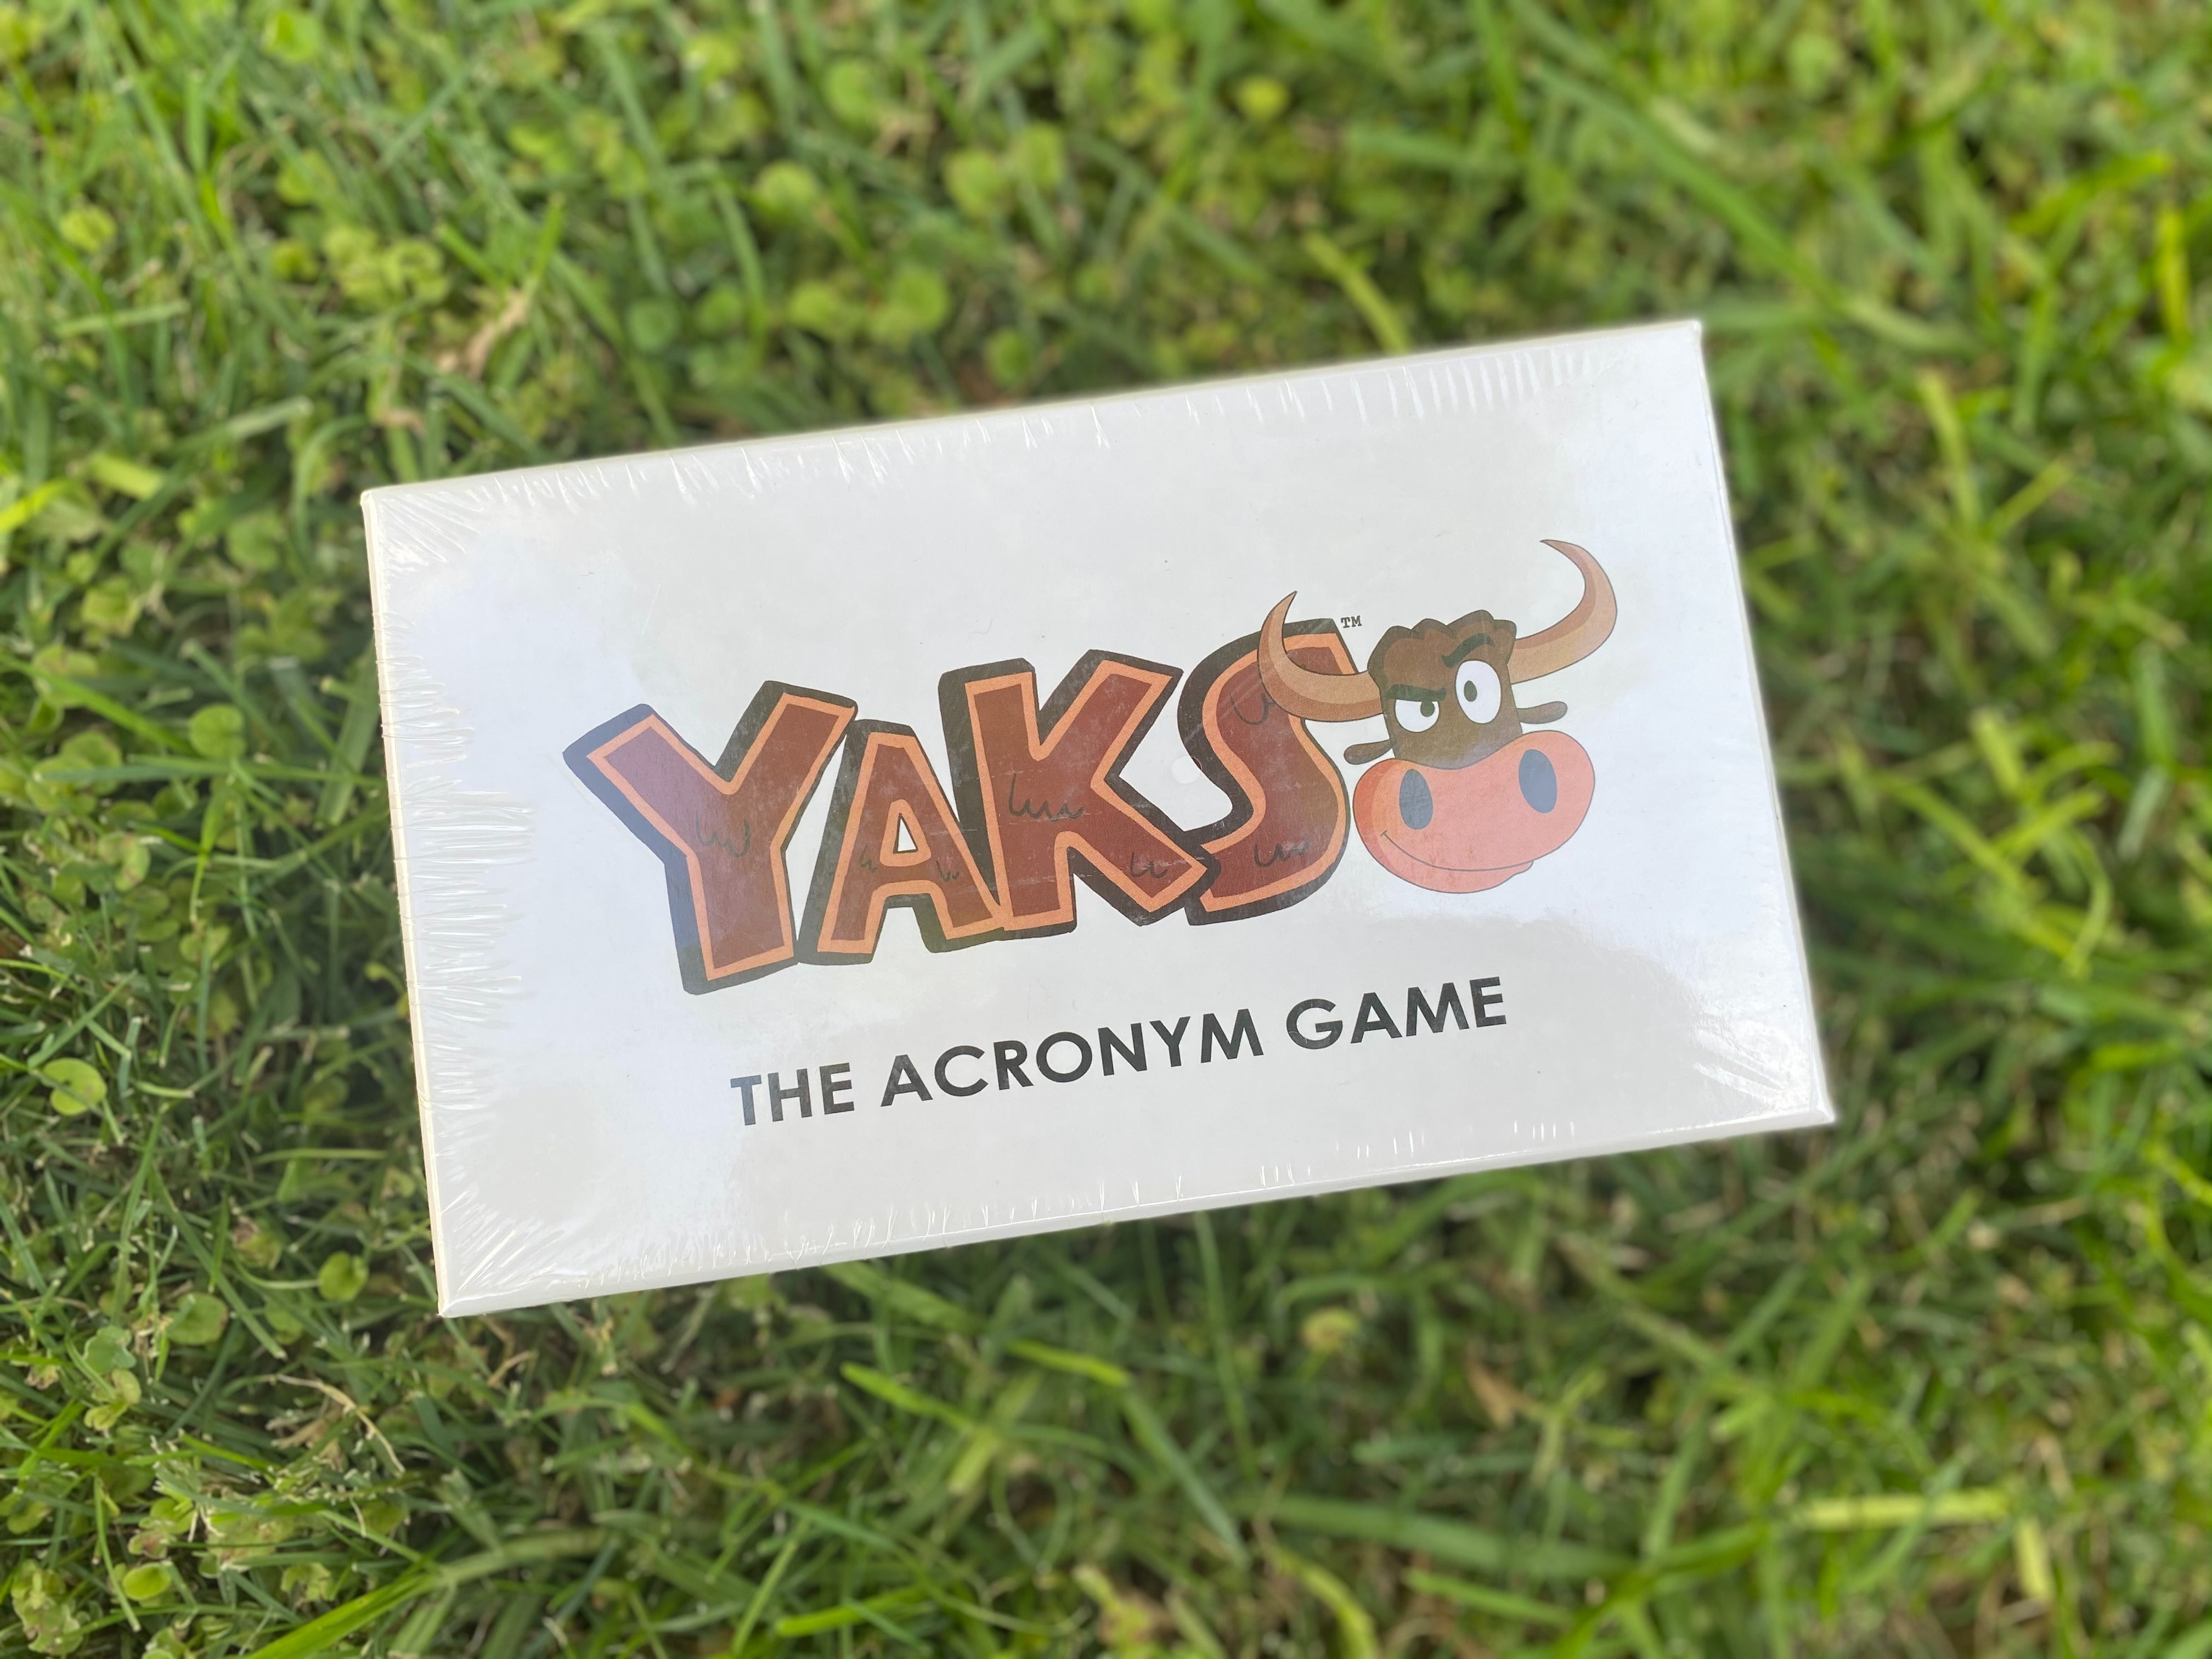 YAKS - The Acronyms Game